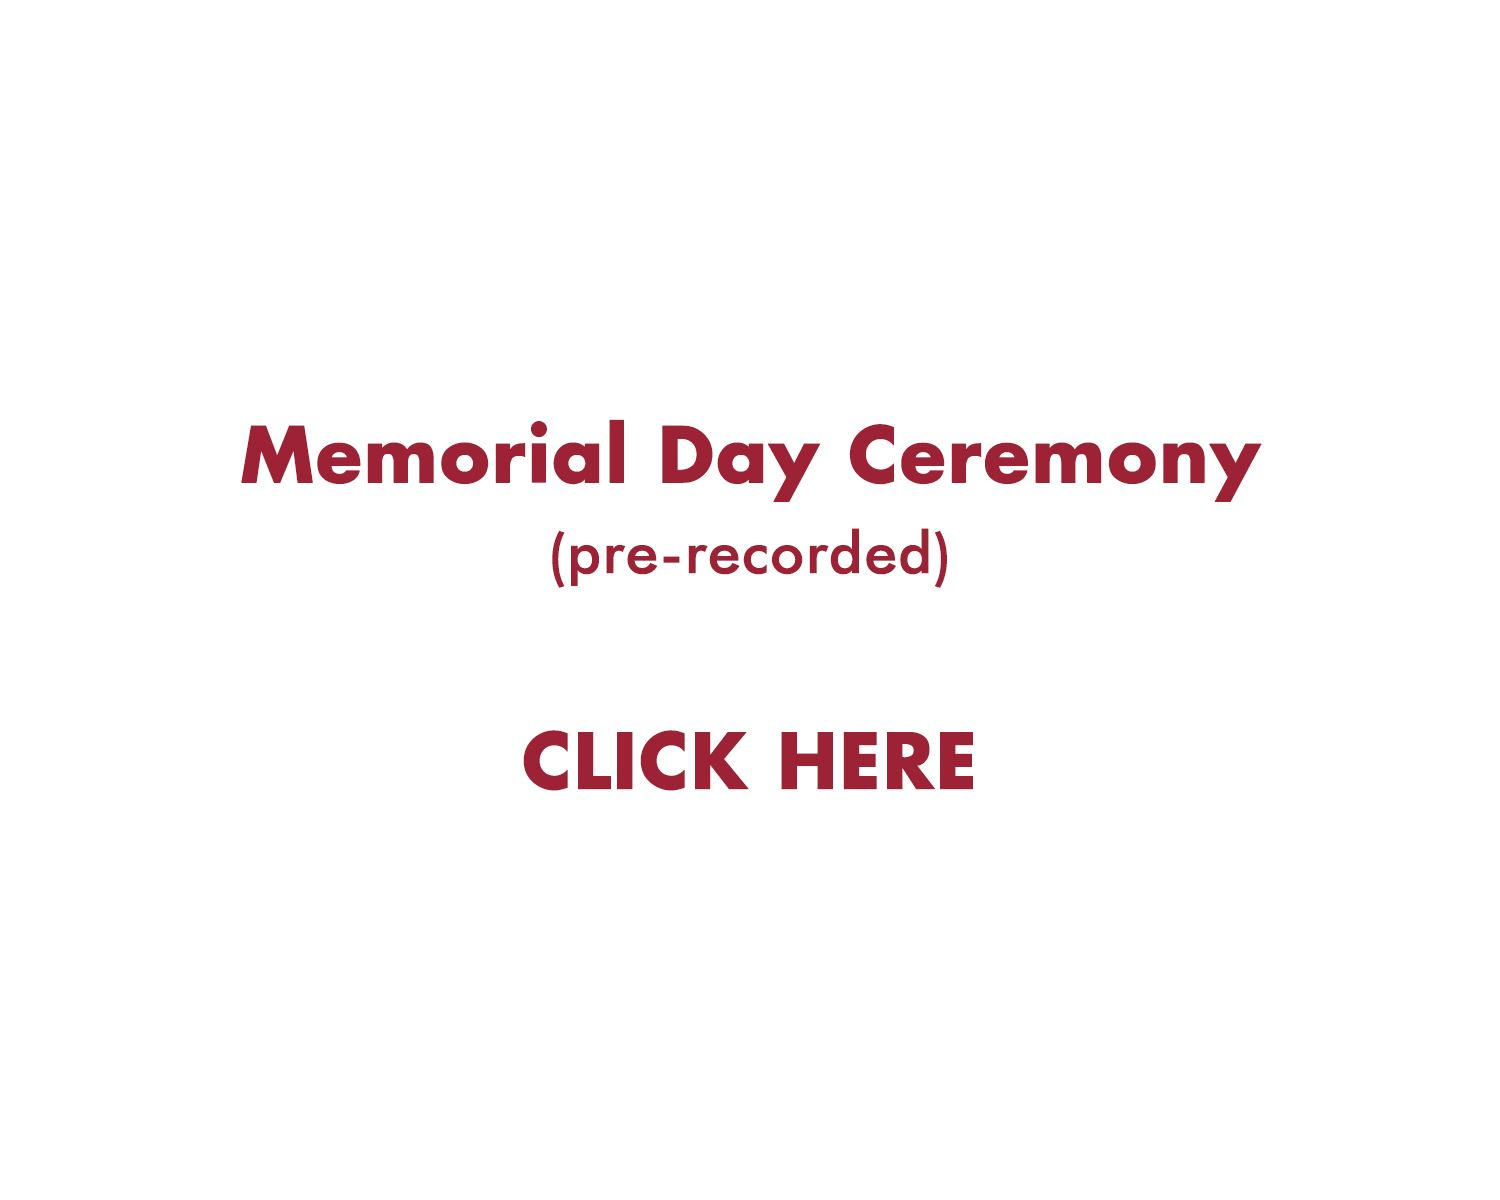 memorial day ceremony